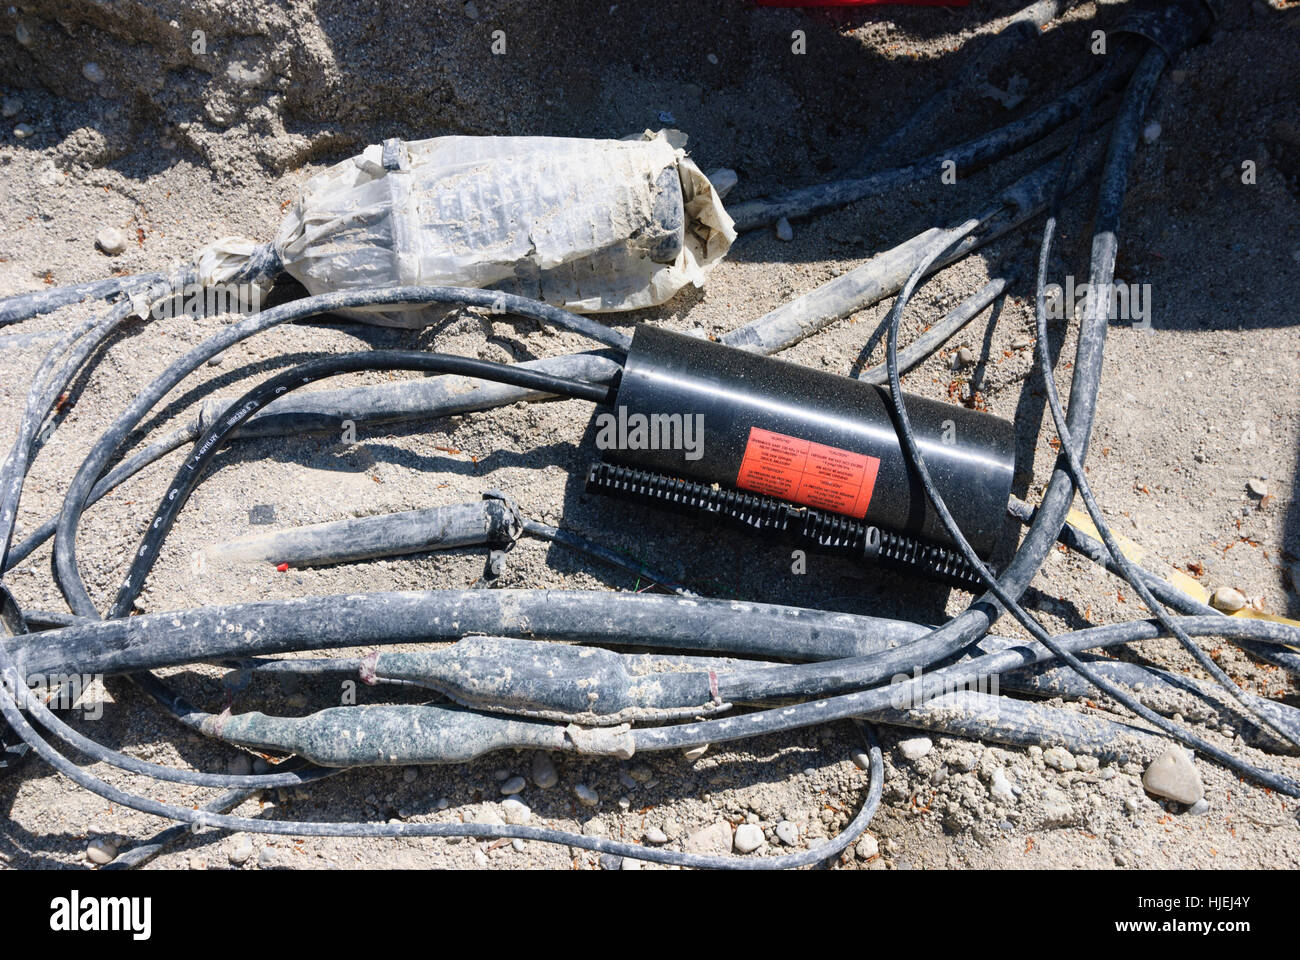 : Cable sockets of a fiber optic cable on a construction site, , , Germany Stock Photo